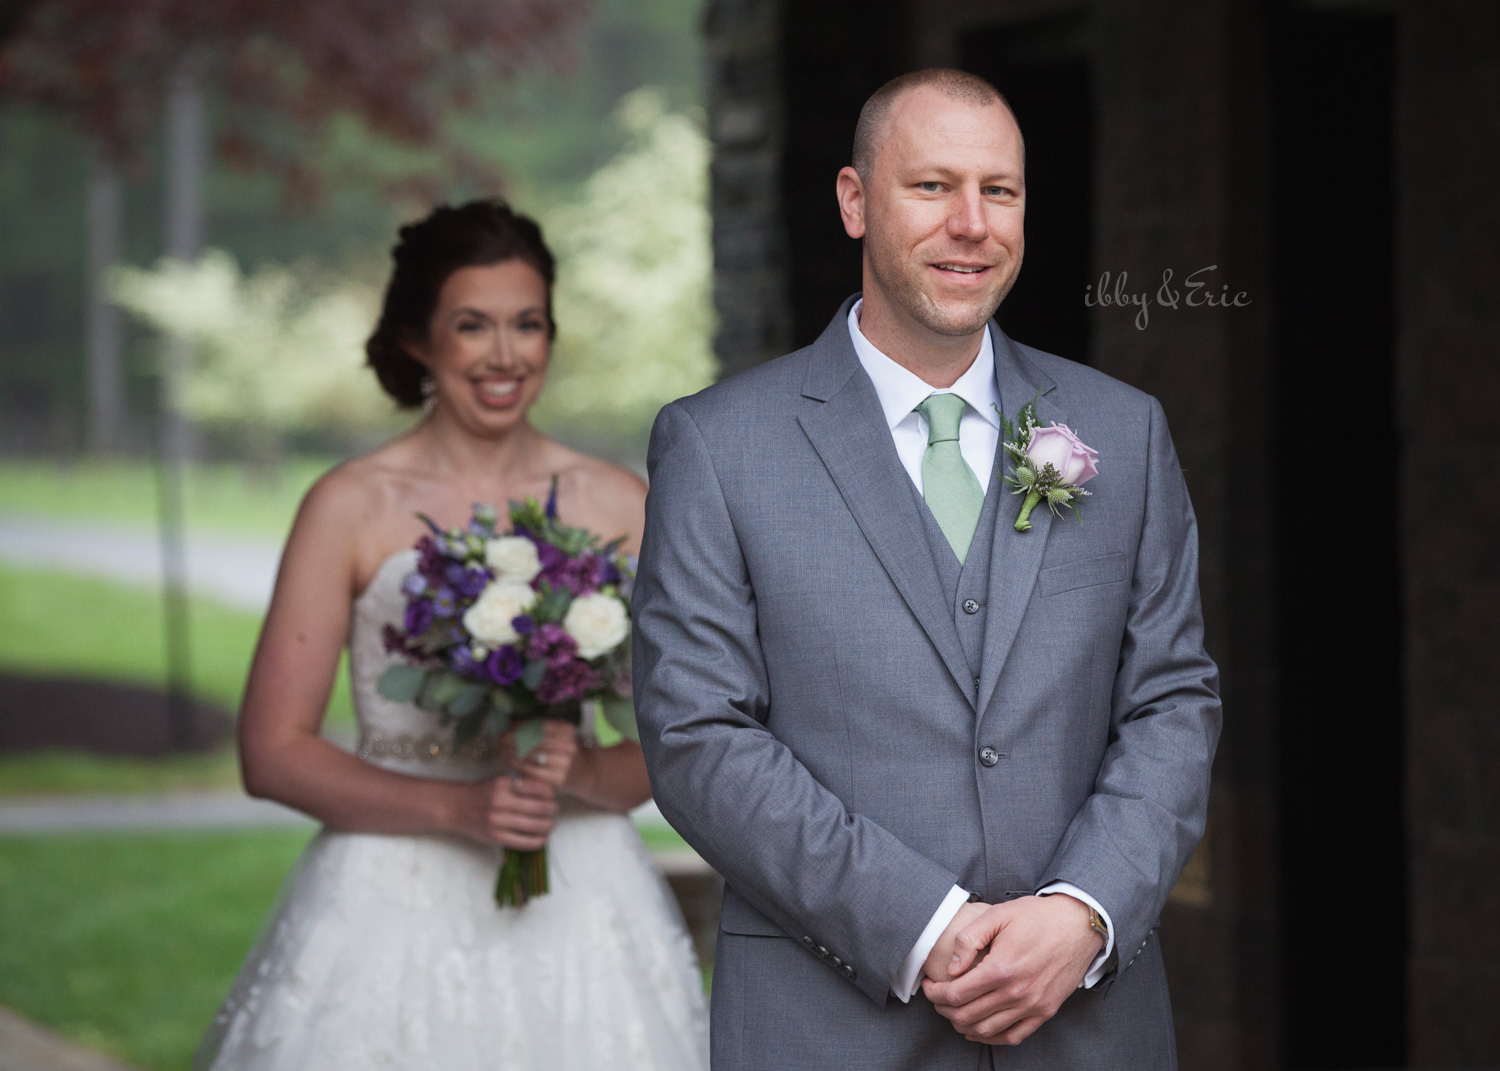 The bride smiles as she walks up behind her groom just before their first look at Stanley Park in Westfield, MA.